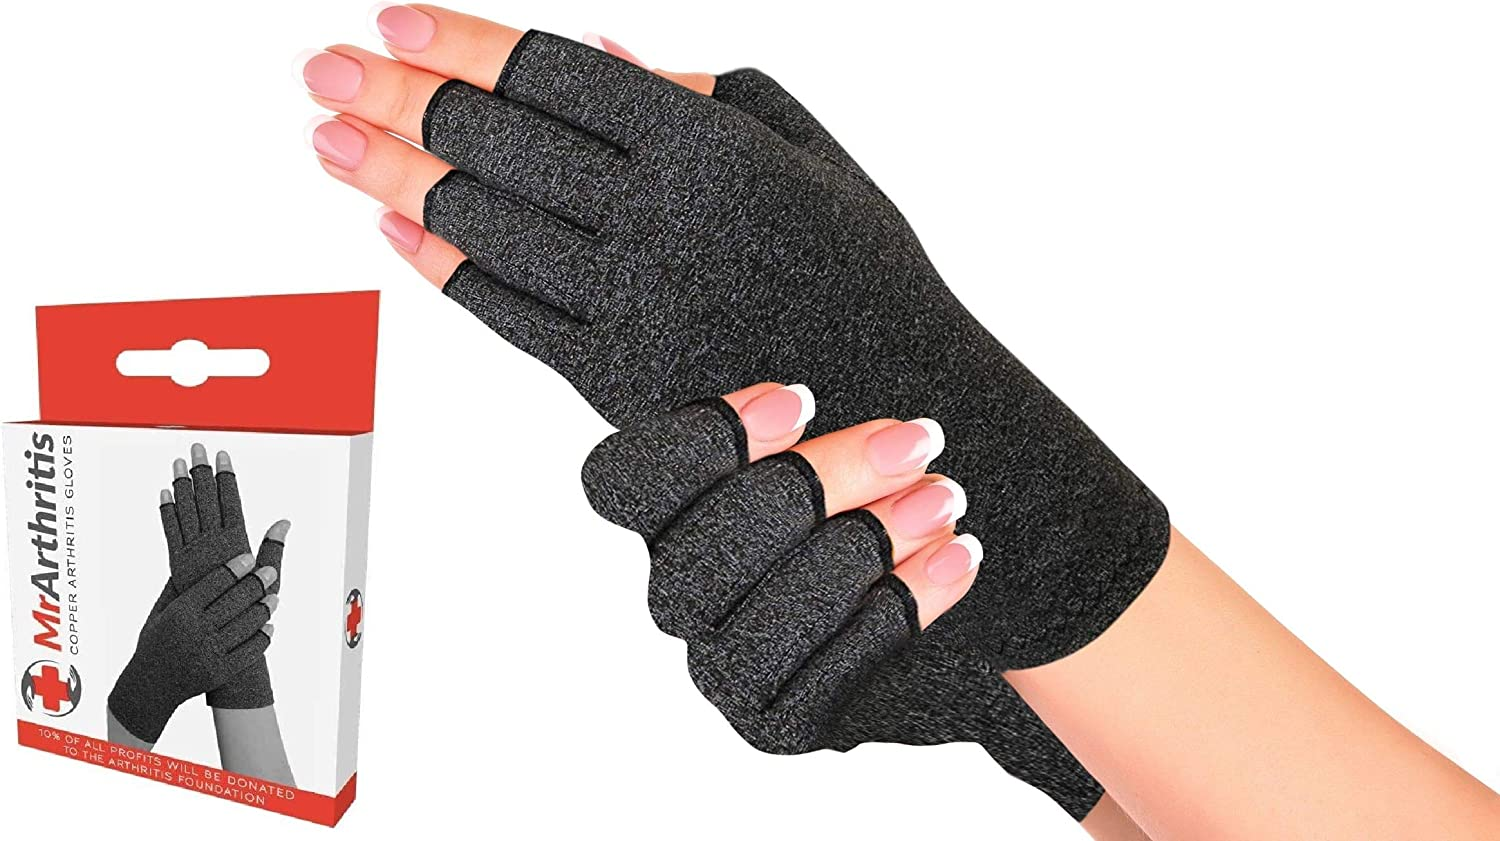 Doctor Developed Compression Glove - Handbook | Hand Support to Prevent Injury in Workout, Weightlifting | Copper Hand Gloves for Rapid Recovery, Joint Pain, Arthritis, Raynauds & Carpal Tunnel